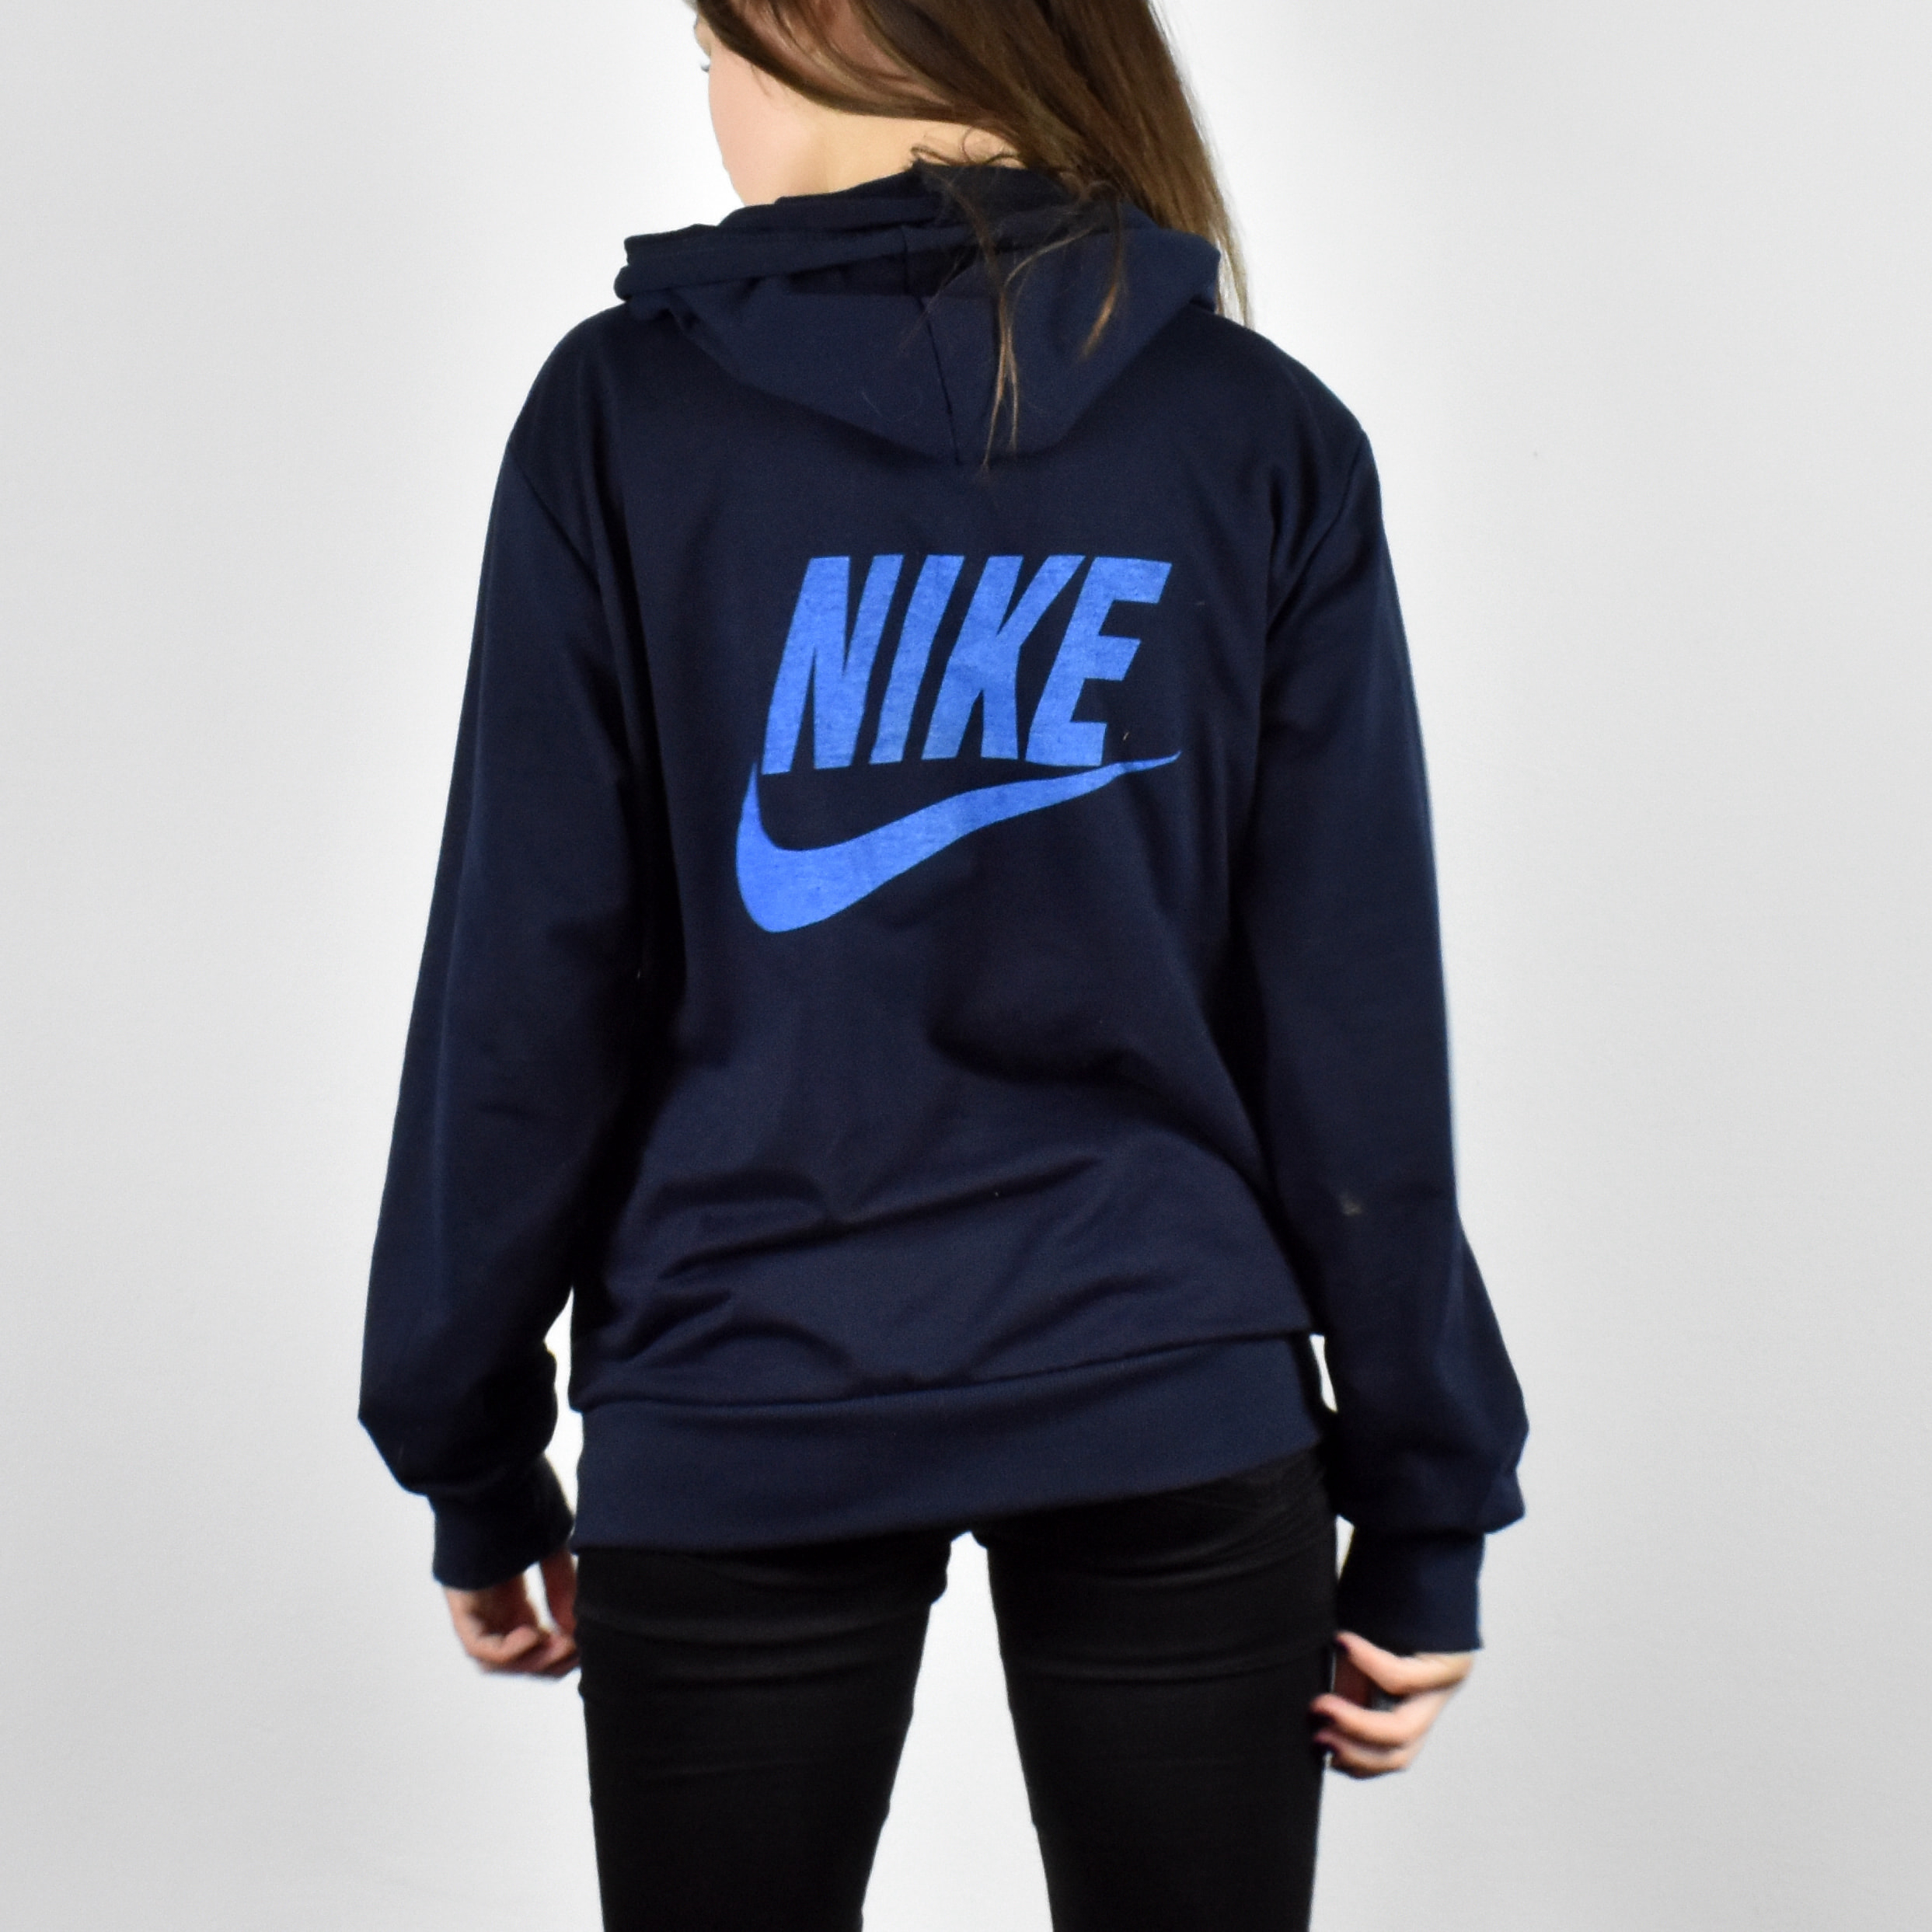 456305e355e6 Unisex Vintage Nike zip up hoodie in black has huge logo on the back size M